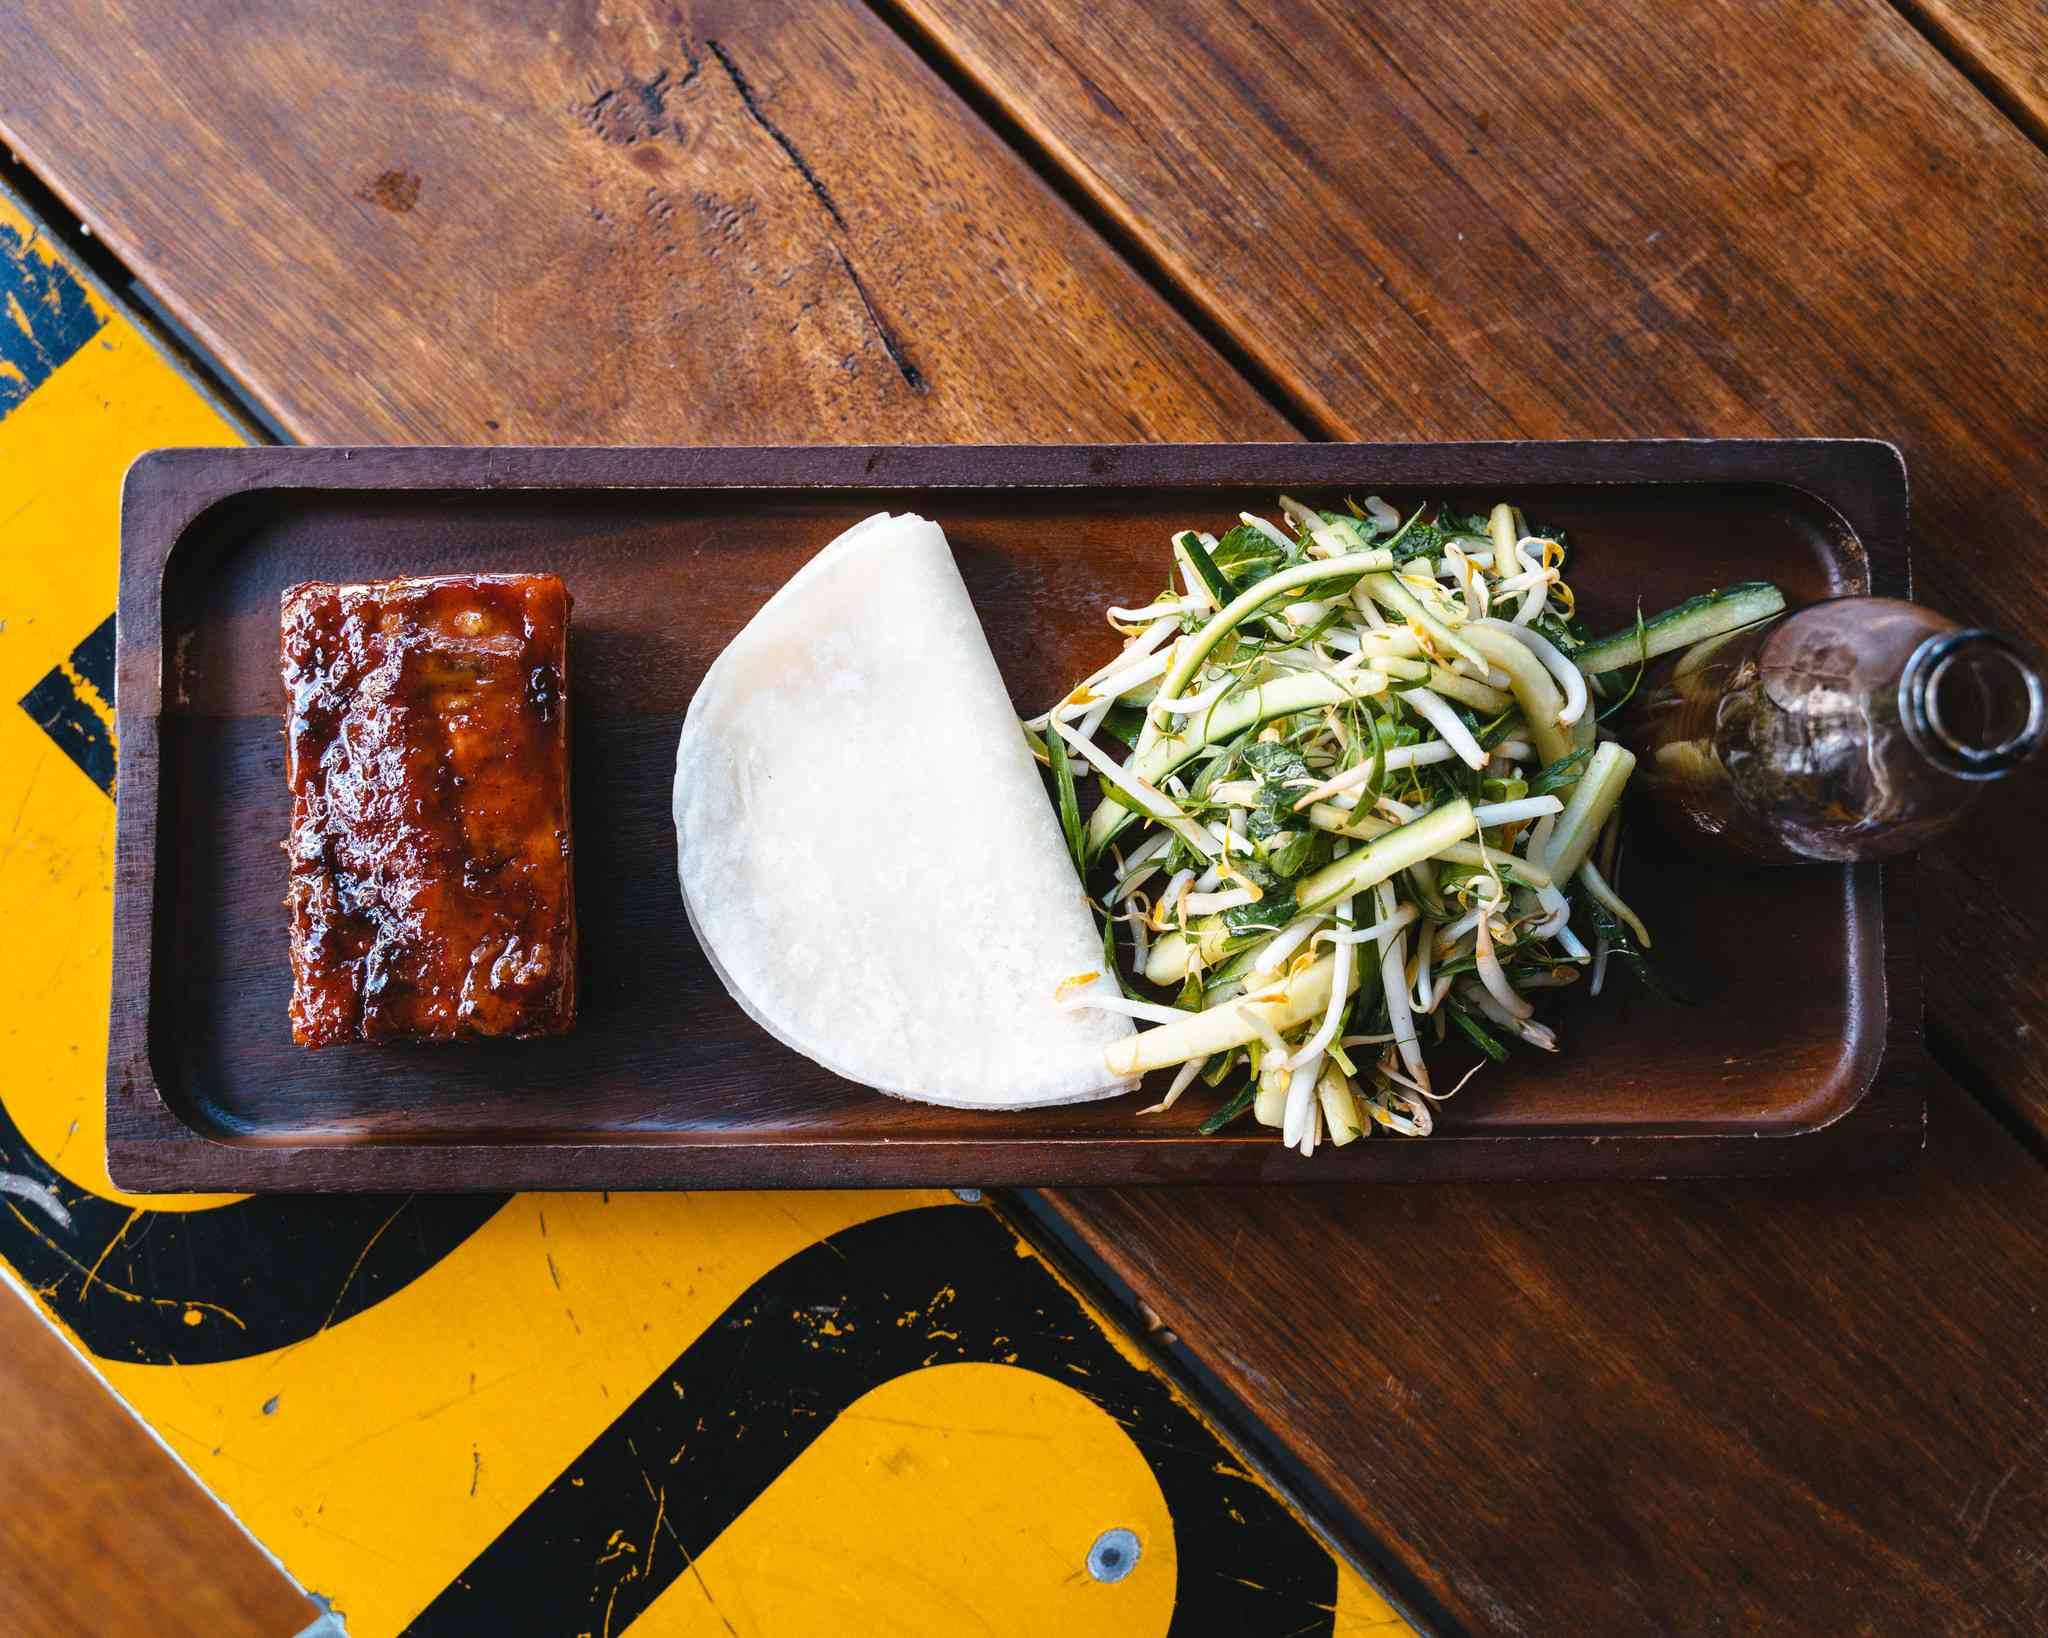 Aerial shot of pork belly with bean sprouts and pancakes on wooden board